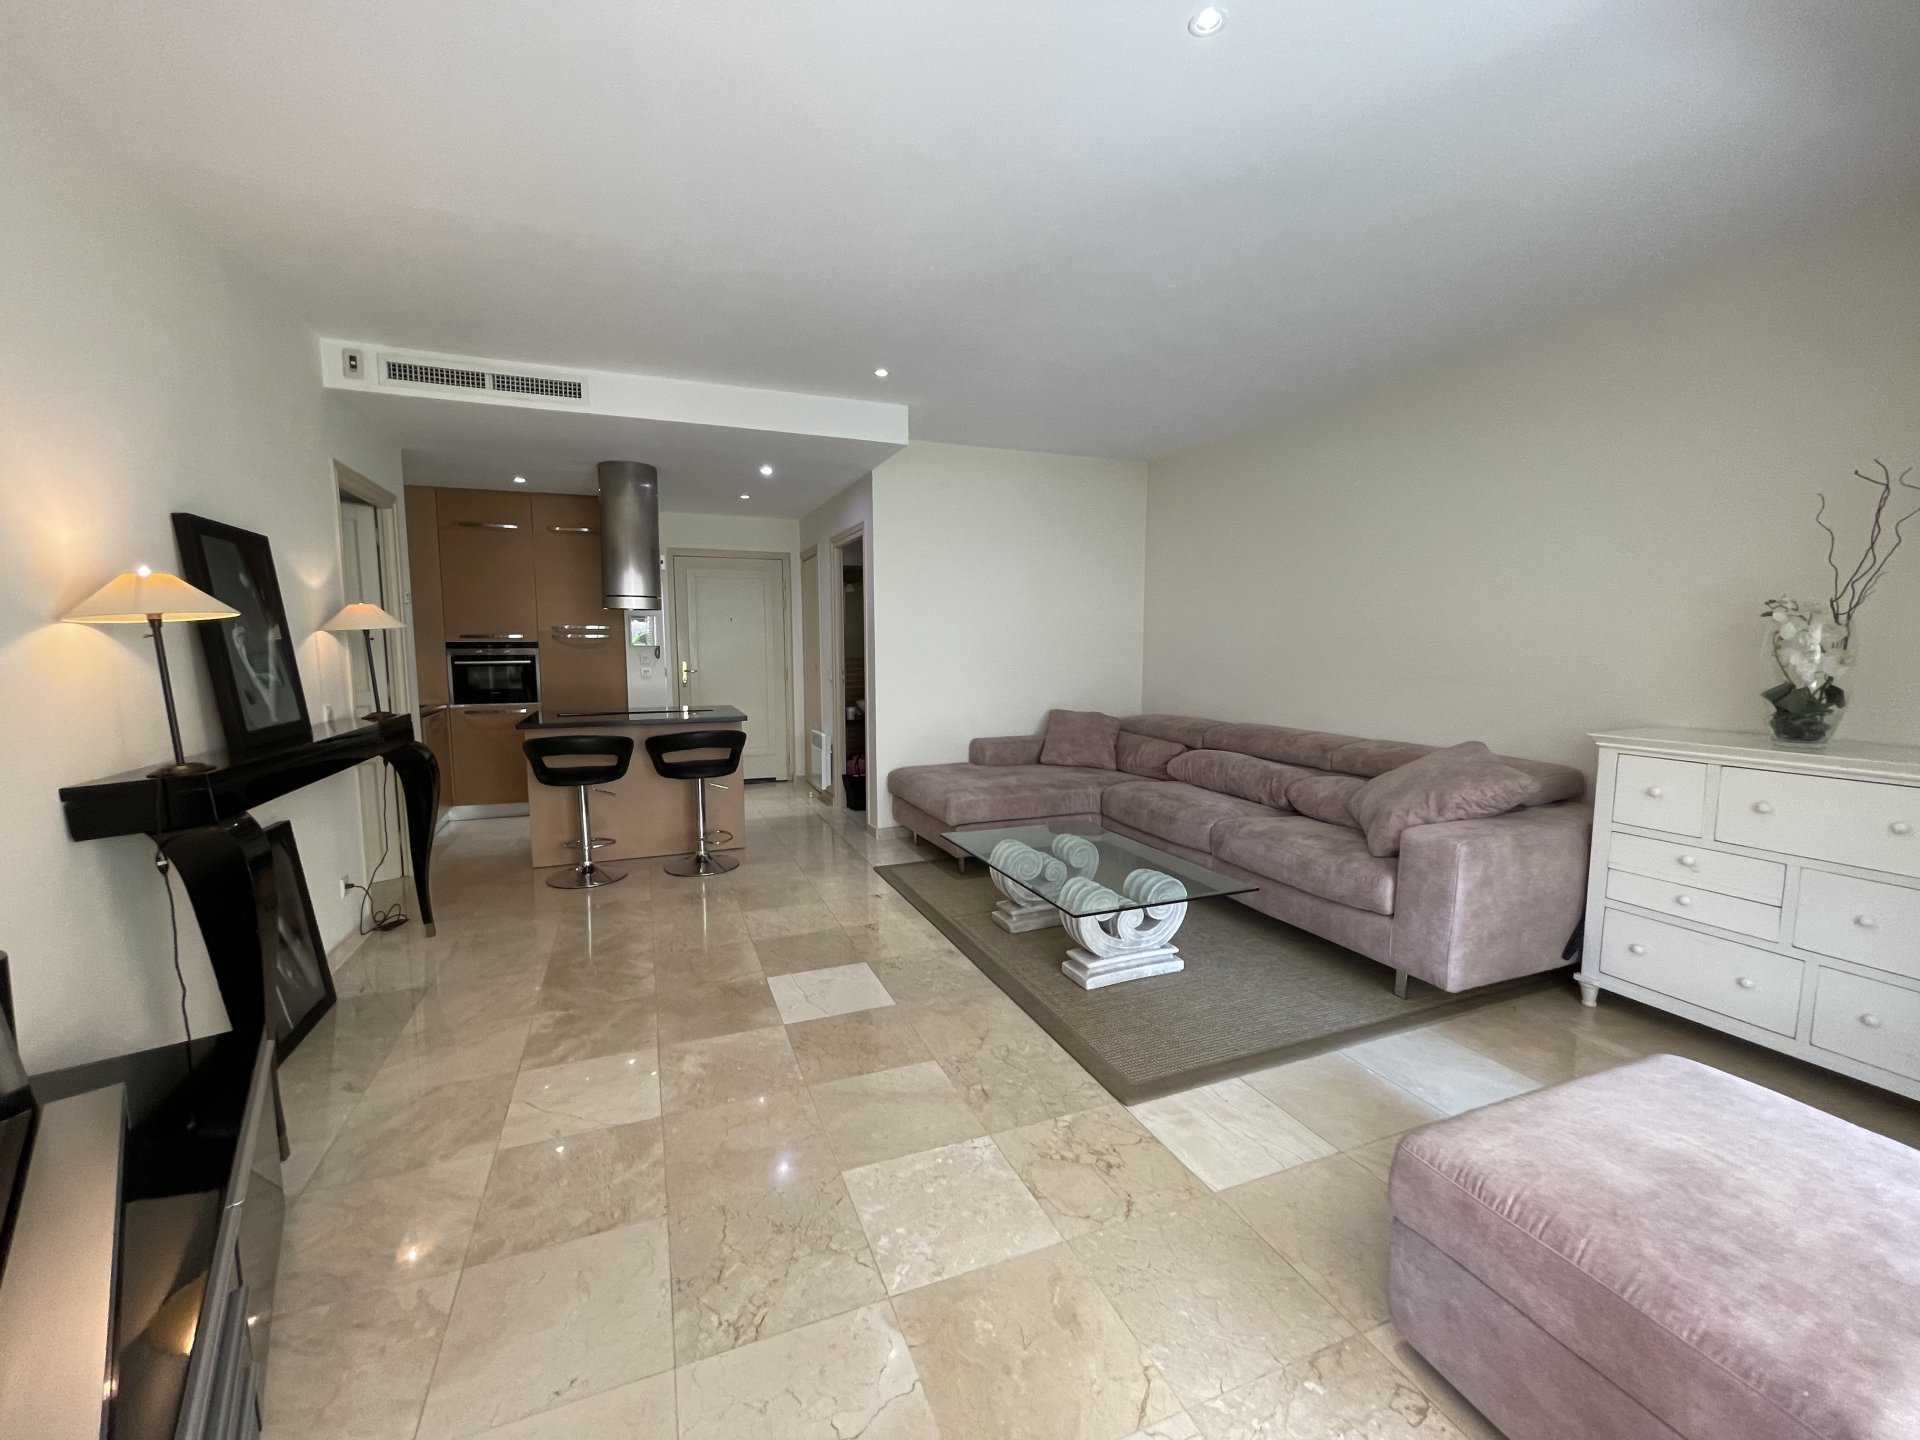 2 room apartment with garden * double garage